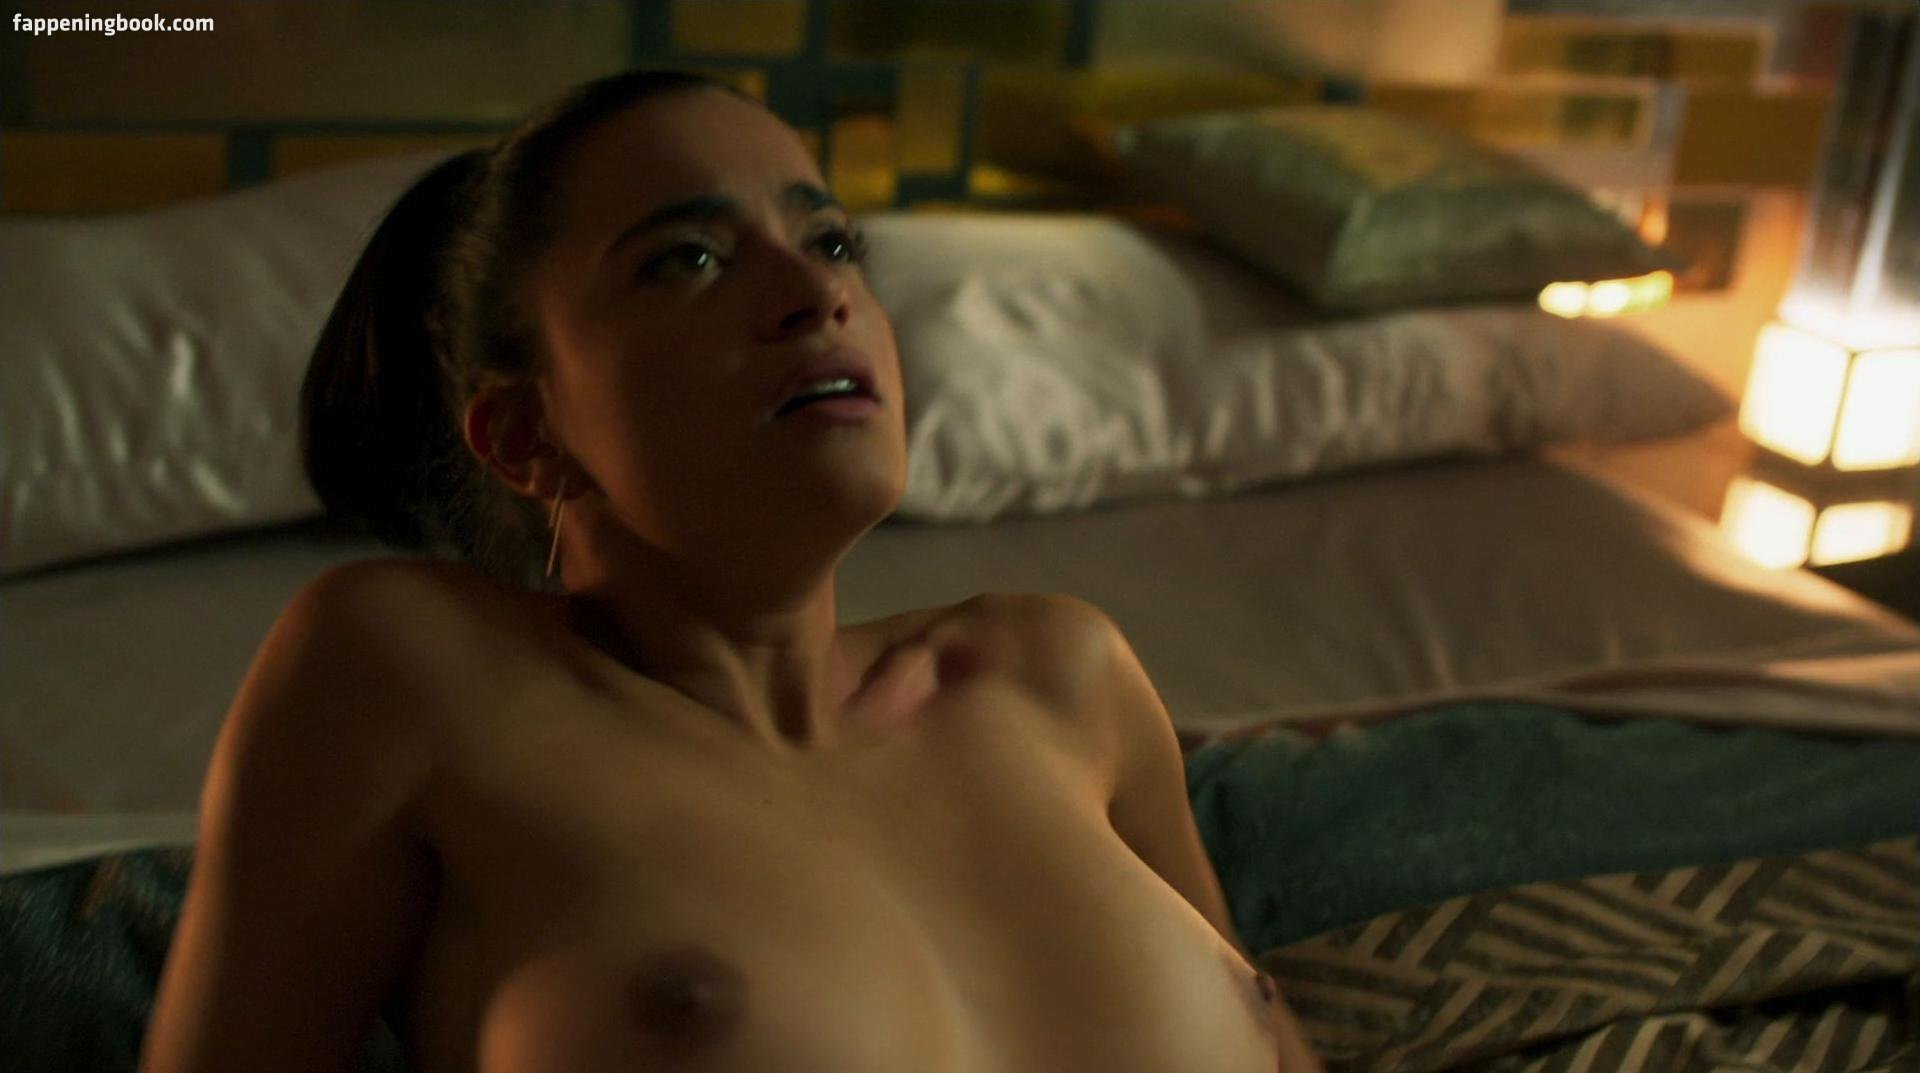 Paulina Gaitan Nude, Sexy, The Fappening, Uncensored - Photo ...